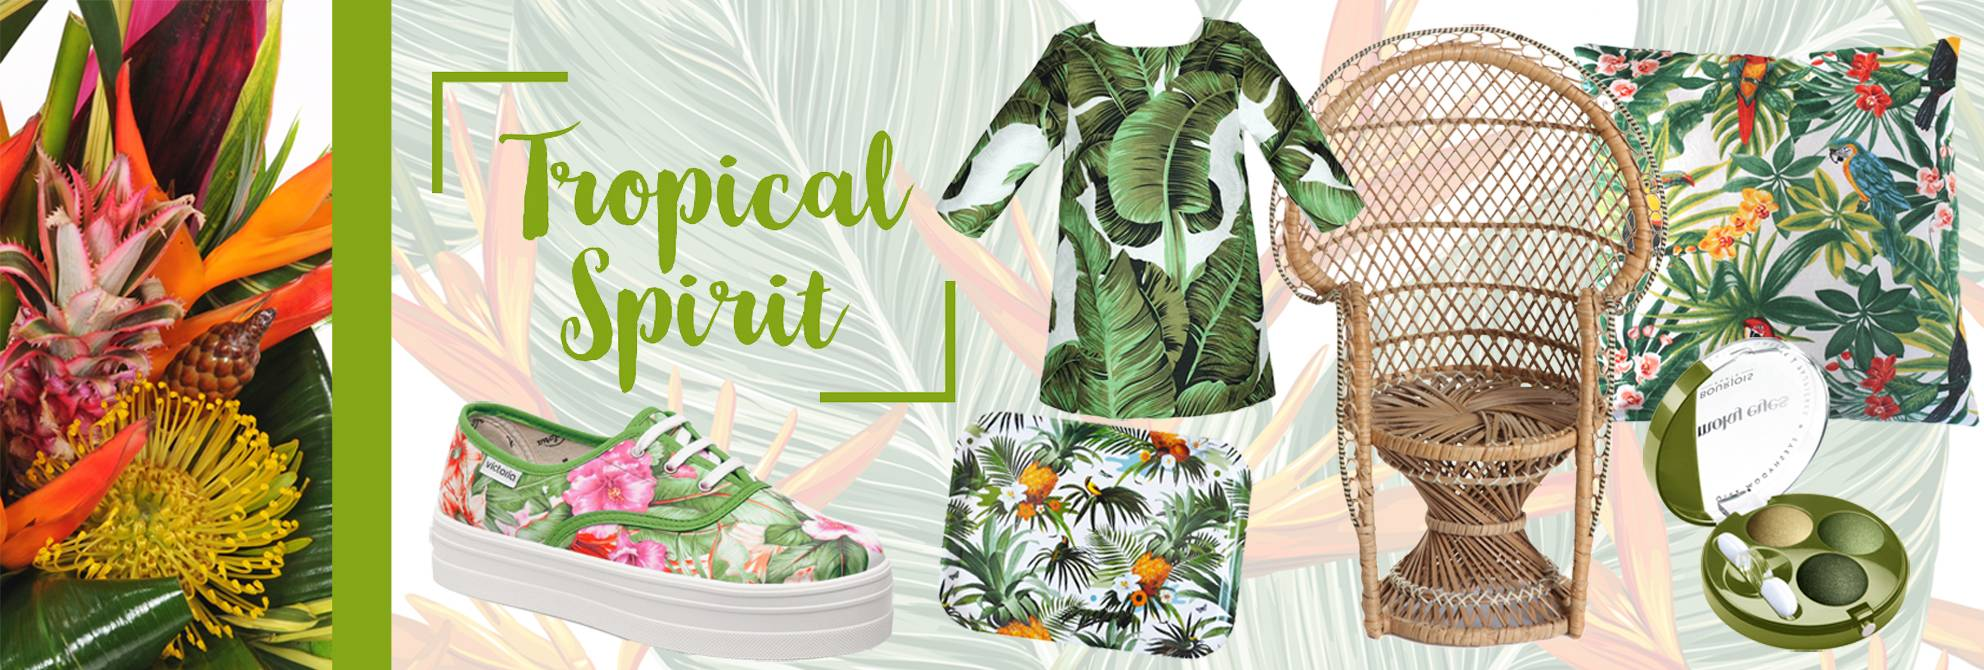 Tropical Spirit